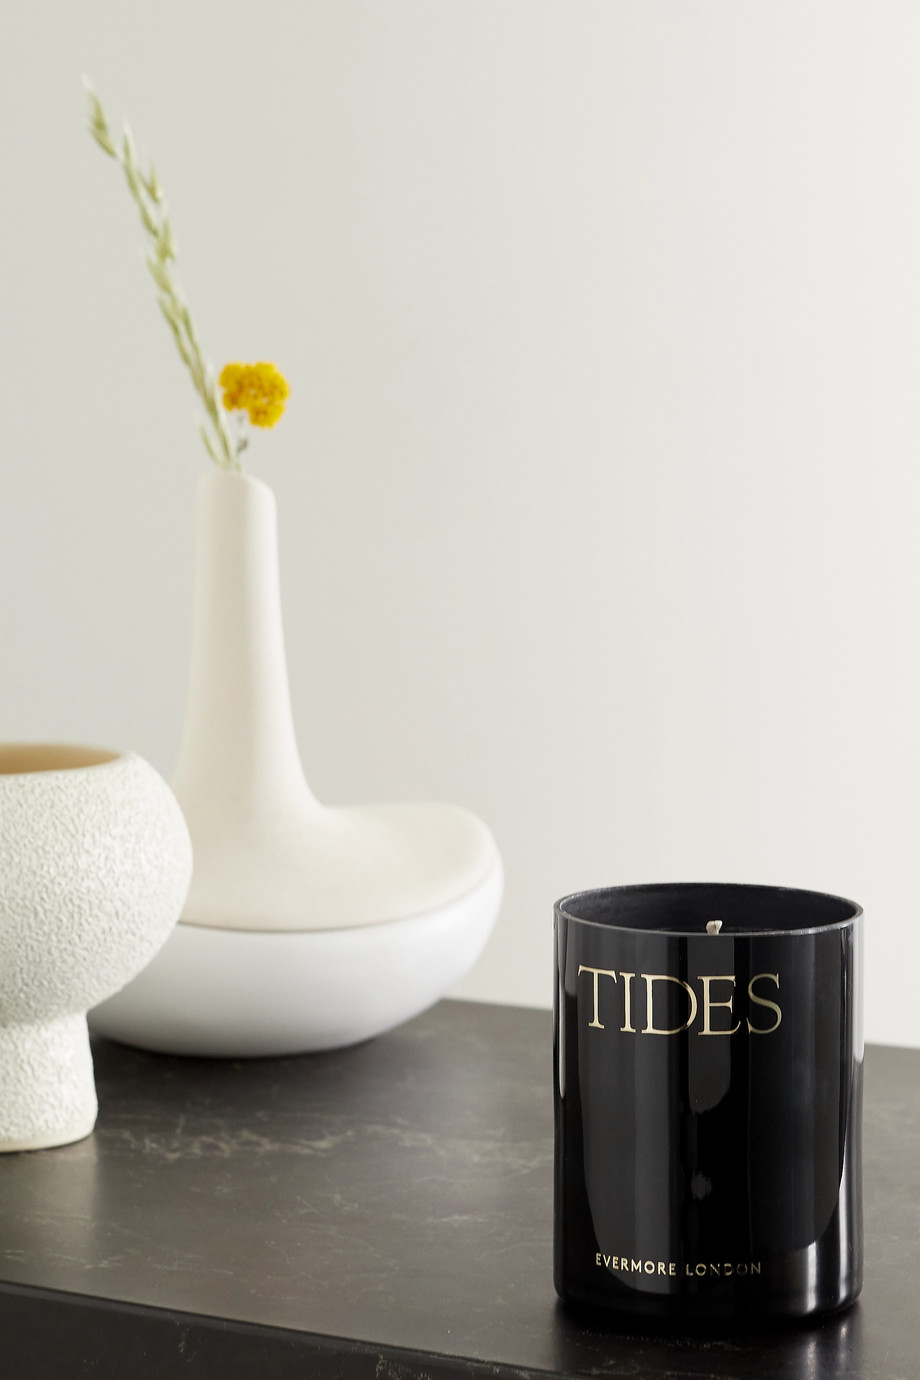 EVERMORE Tides scented candle - Sand & Fig Trees, 300g